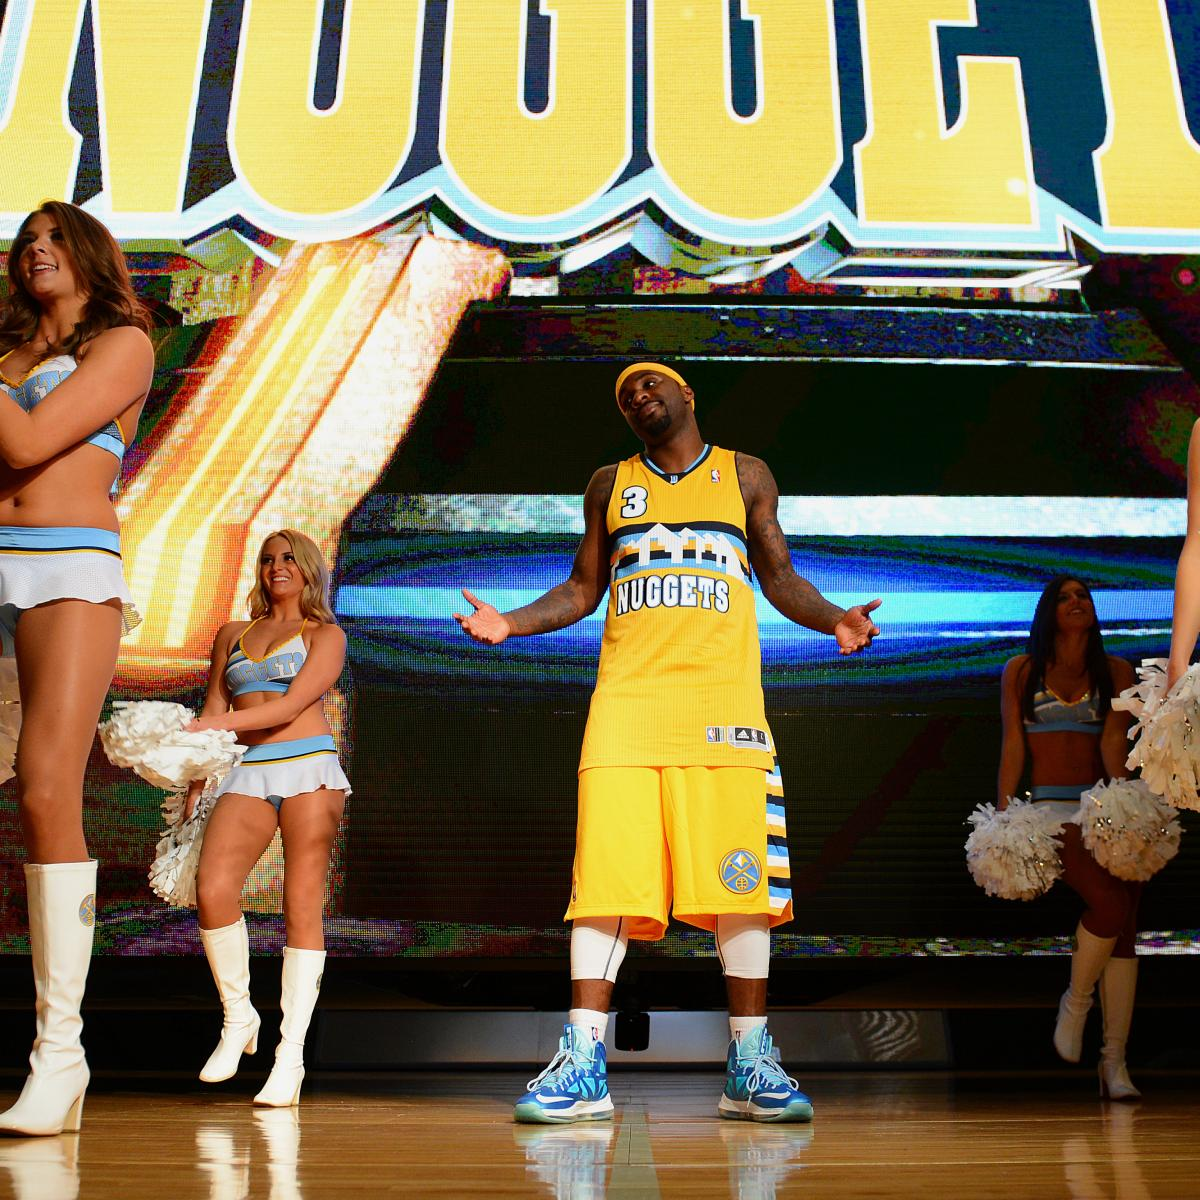 Denver Nuggets Players: Denver Nuggets Preview 2013-14: Lineup, Roster Predictions